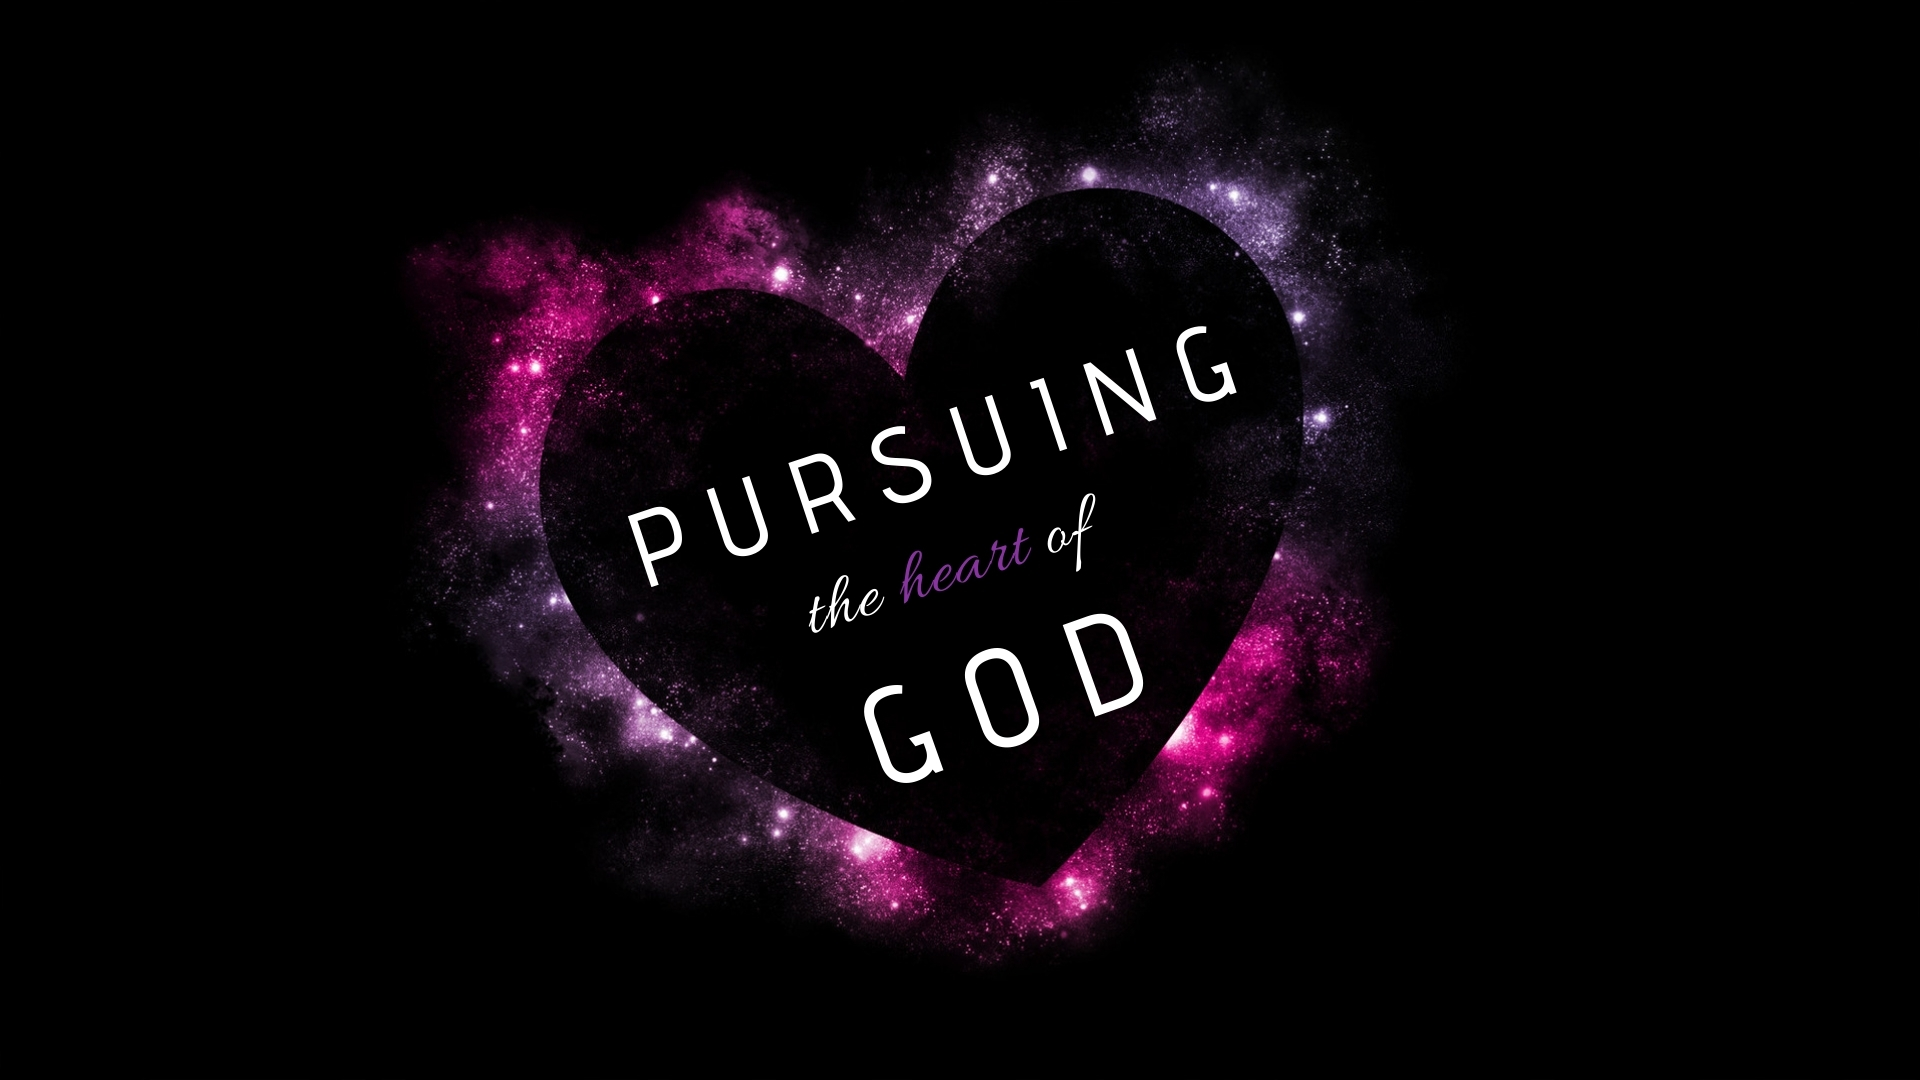 Sunday April 7, 2019 Pursuing The Heart Of God - Bro. Mike Hawks